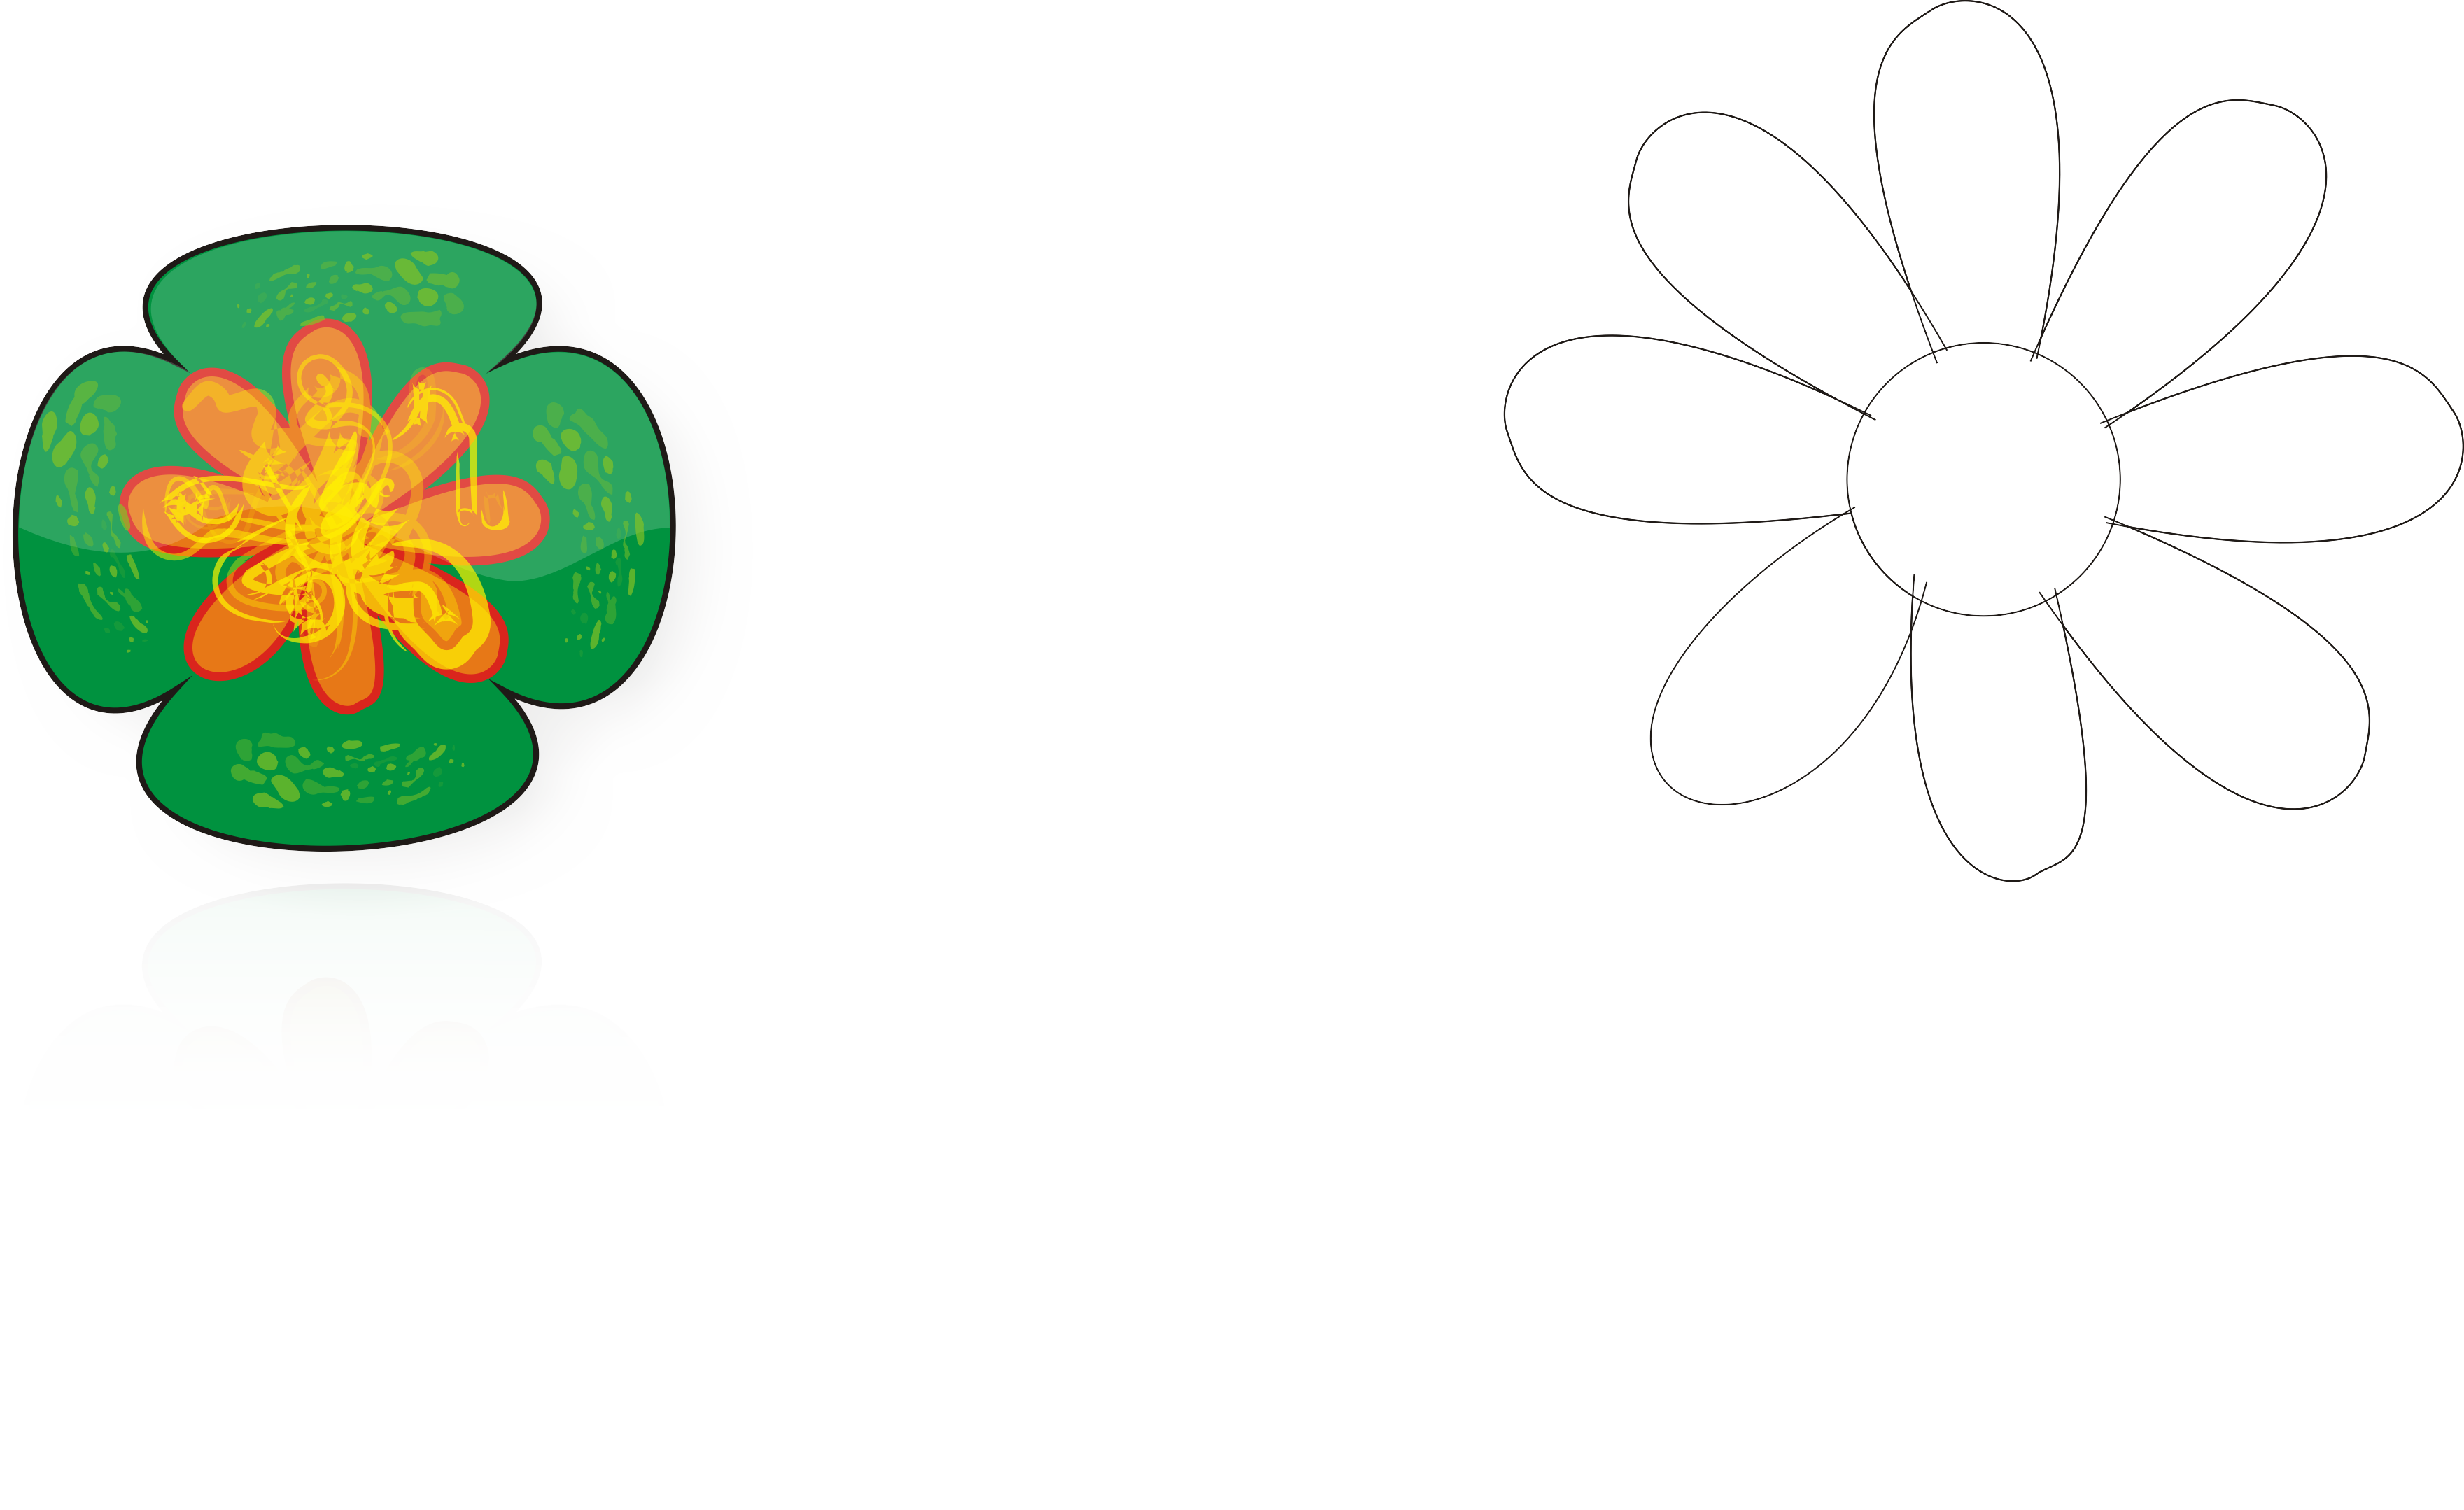 Flor En Corel Draw